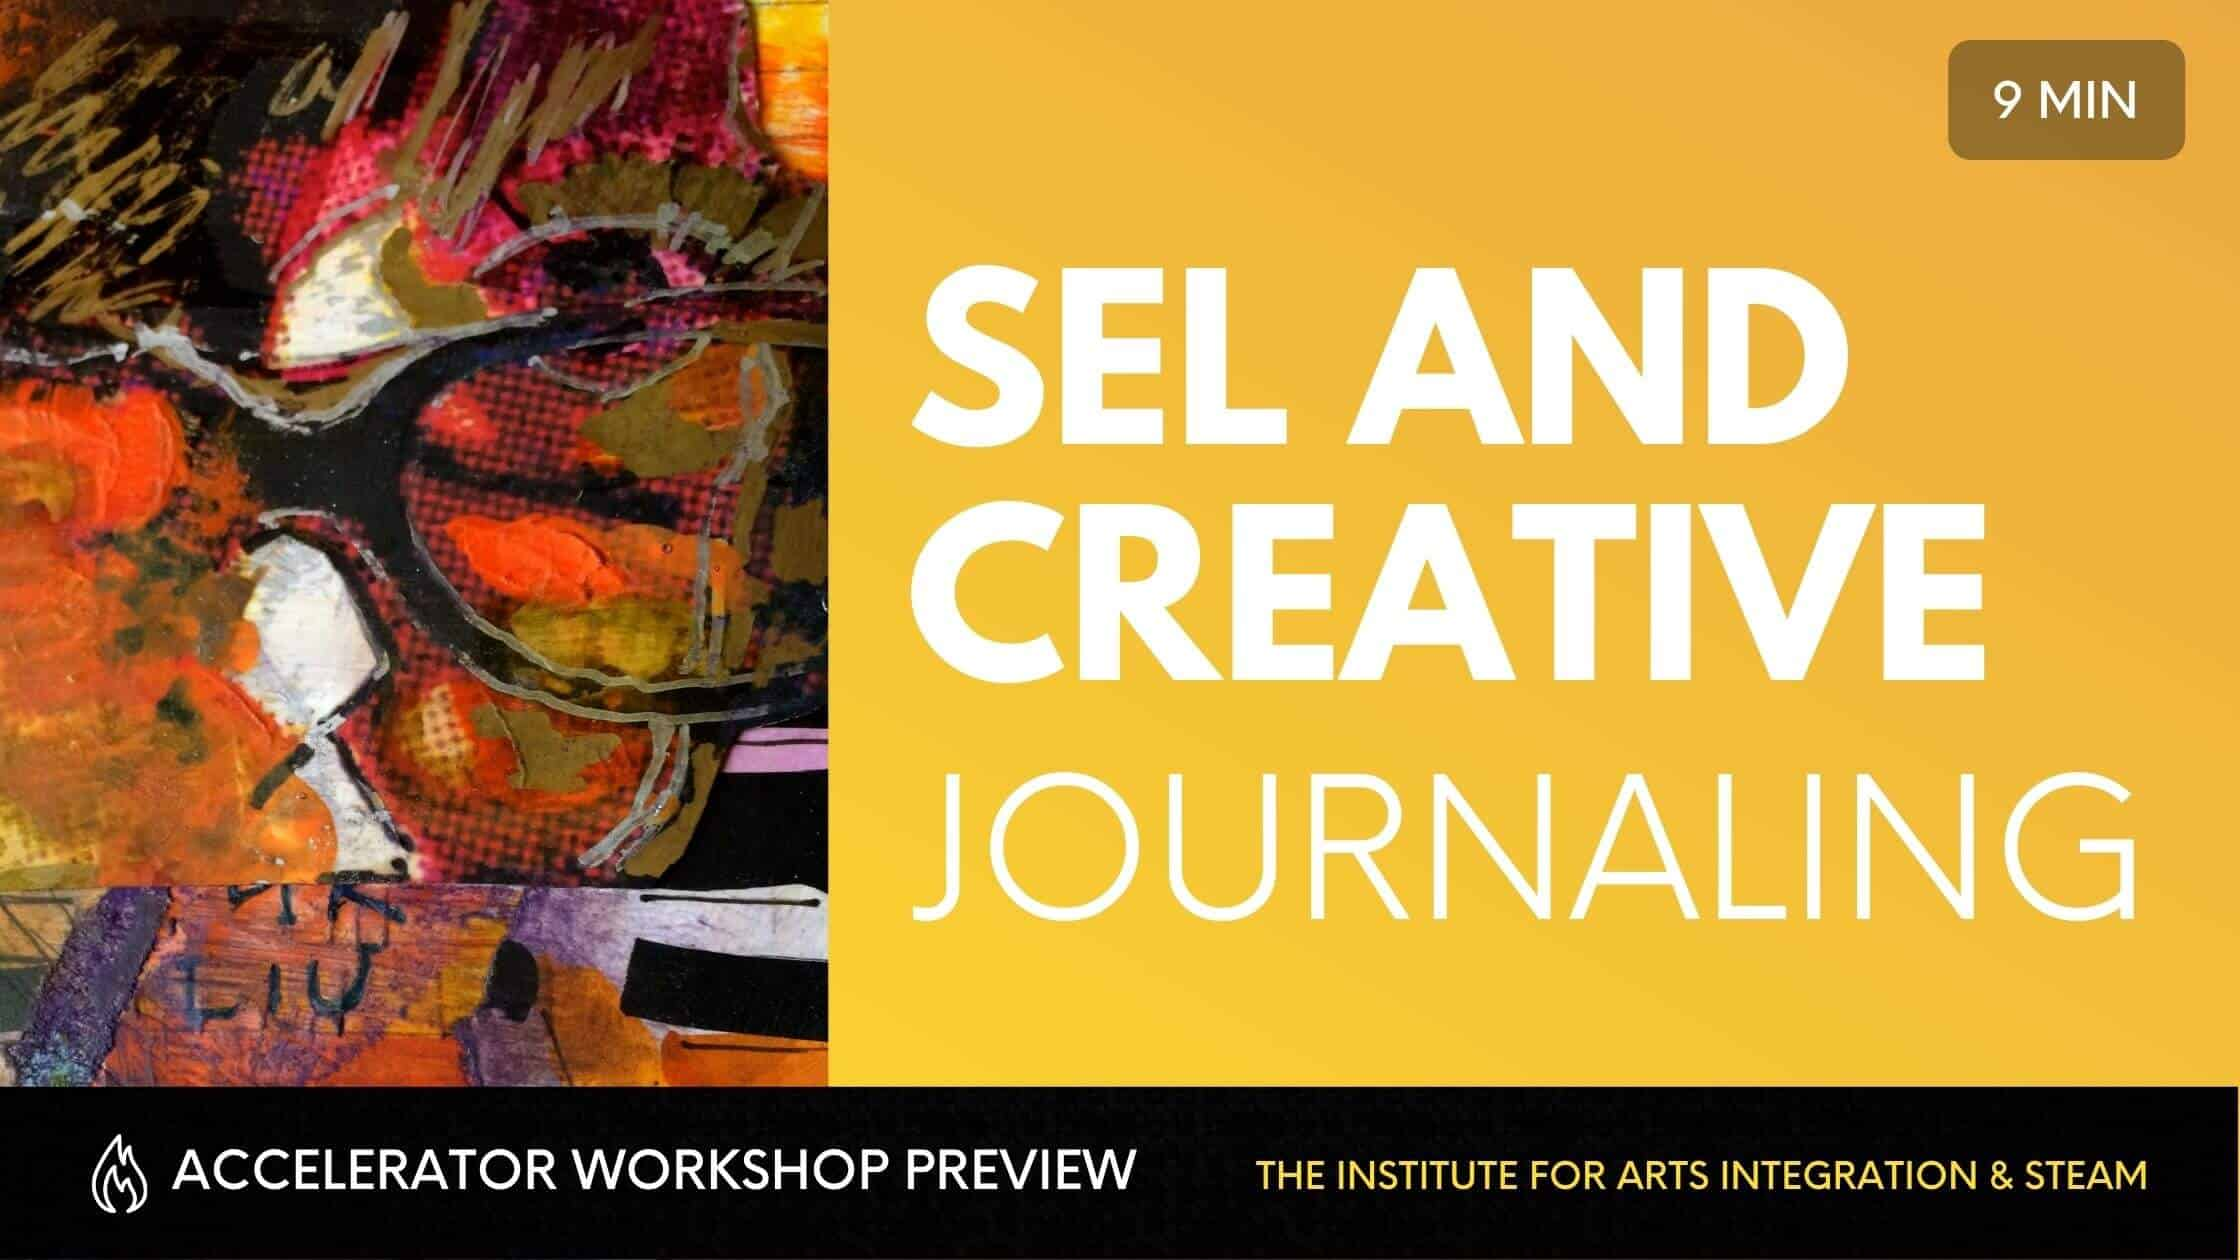 SEL AND CREATIVE JOURNALING